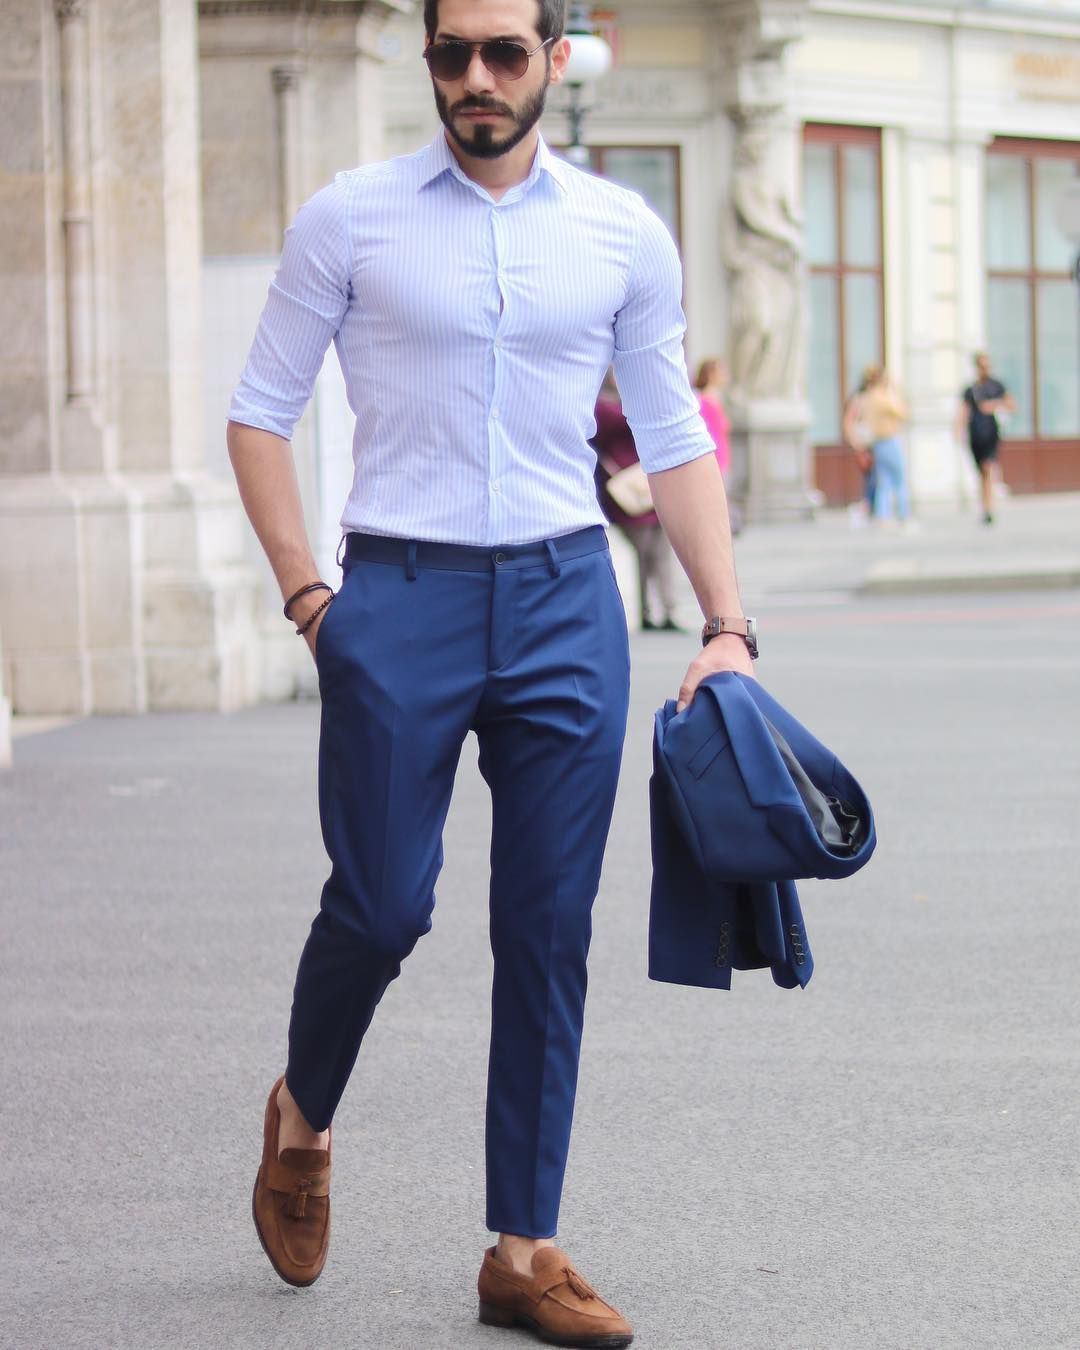 Good Afternoon Rate This Outfit Guys 1 10 Formal Men Outfit Mens Fashion Suits Mens Pants Fashion